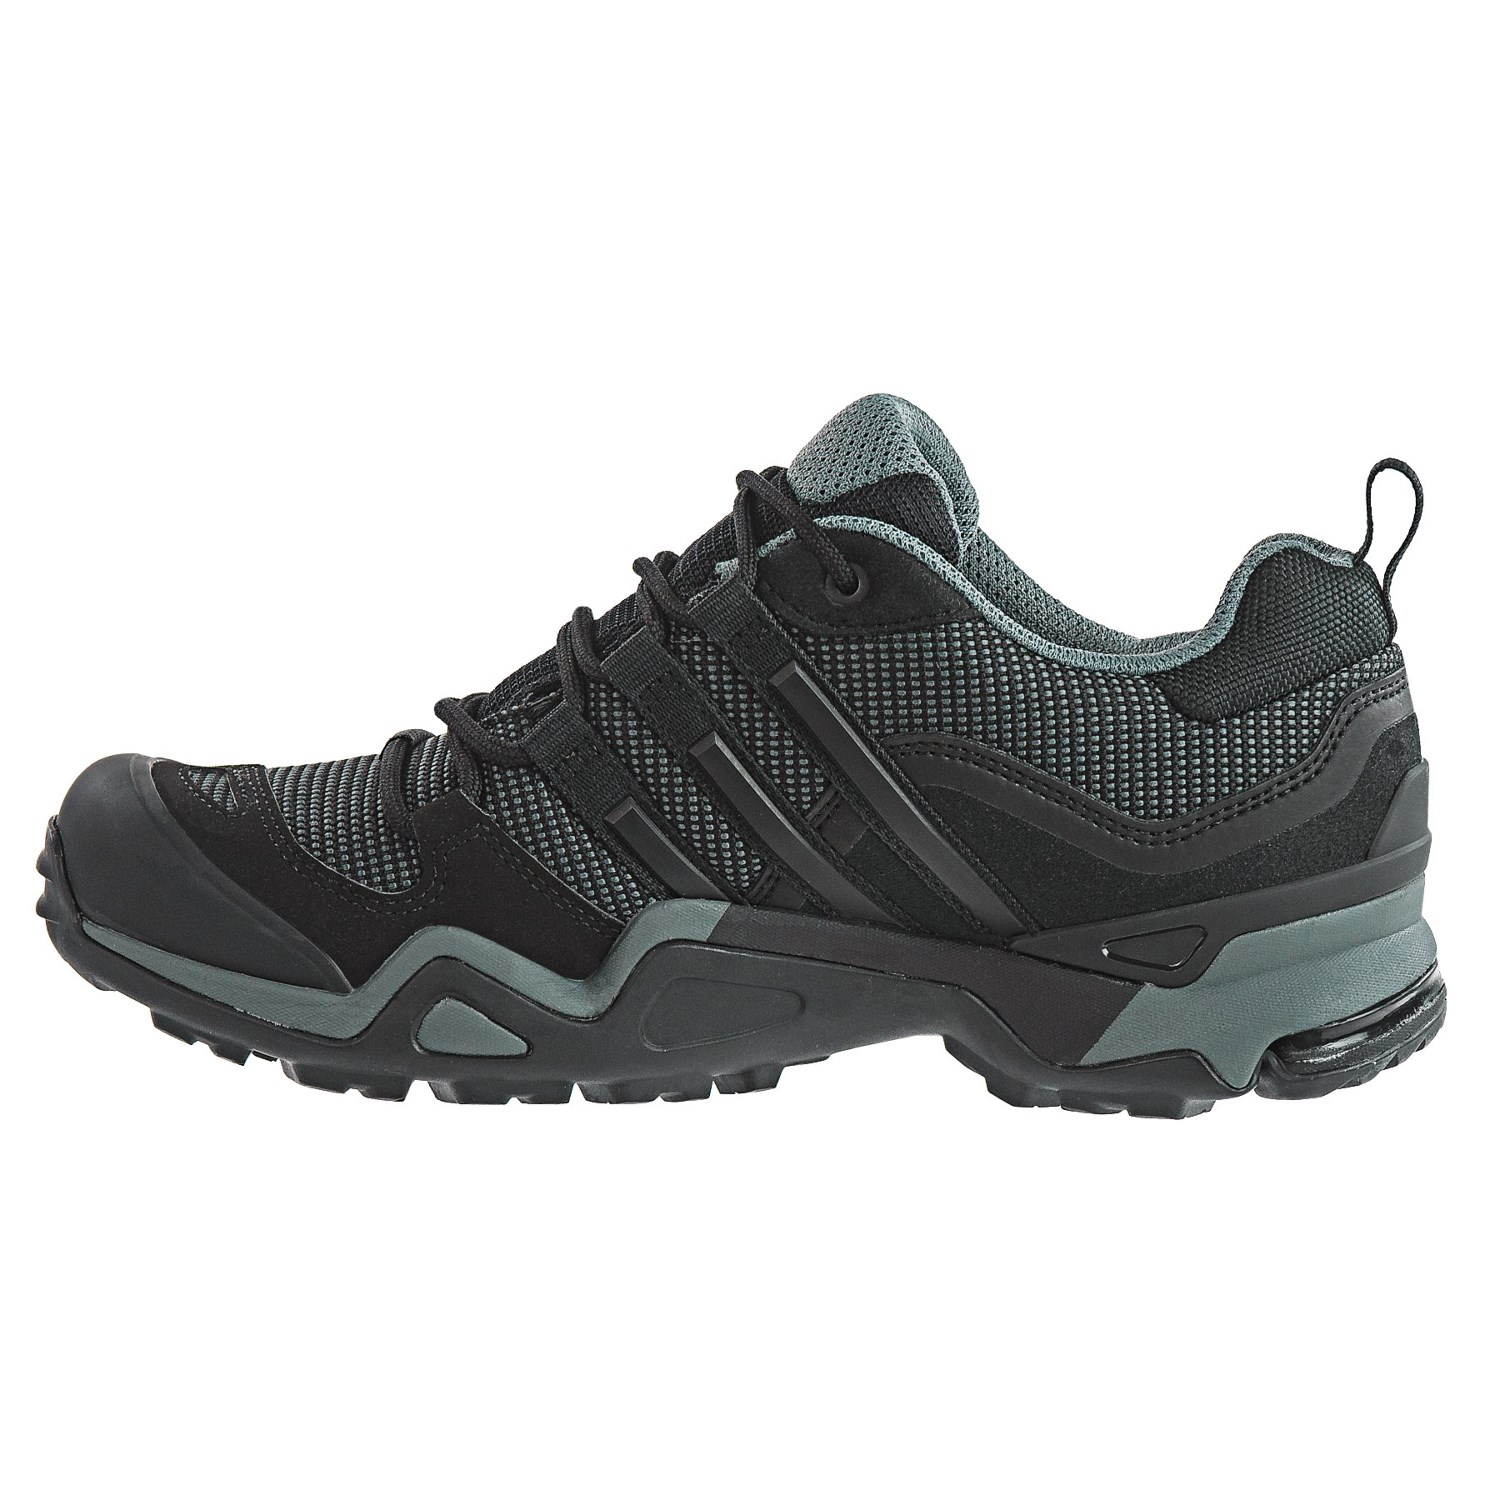 Adidas Outdoor Terrex Fast X Gore Tex 174 Hiking Shoes For